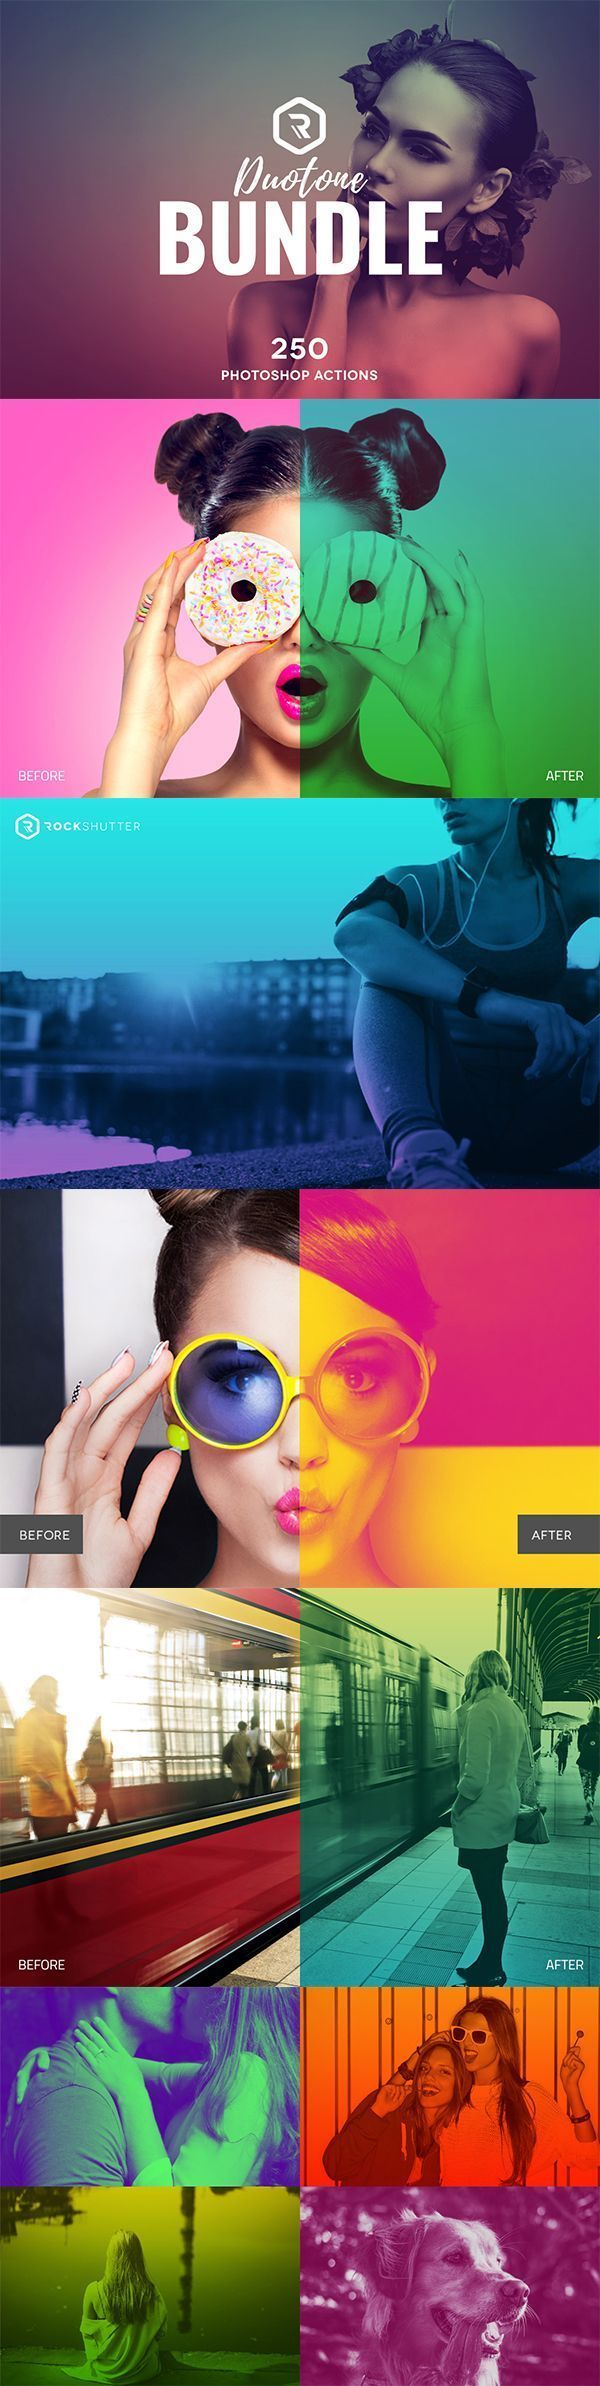 Looking for massive value? Then this big bundle of Premium Photoshop Actions is for you. Get our two popular Duotone Collections plus other 30 exclusive duotone gradients in a single pack at a discounted price. Get them all for just $29. Professional and easy to use actions, this bundle has everything you'll need to make your photos limitless.